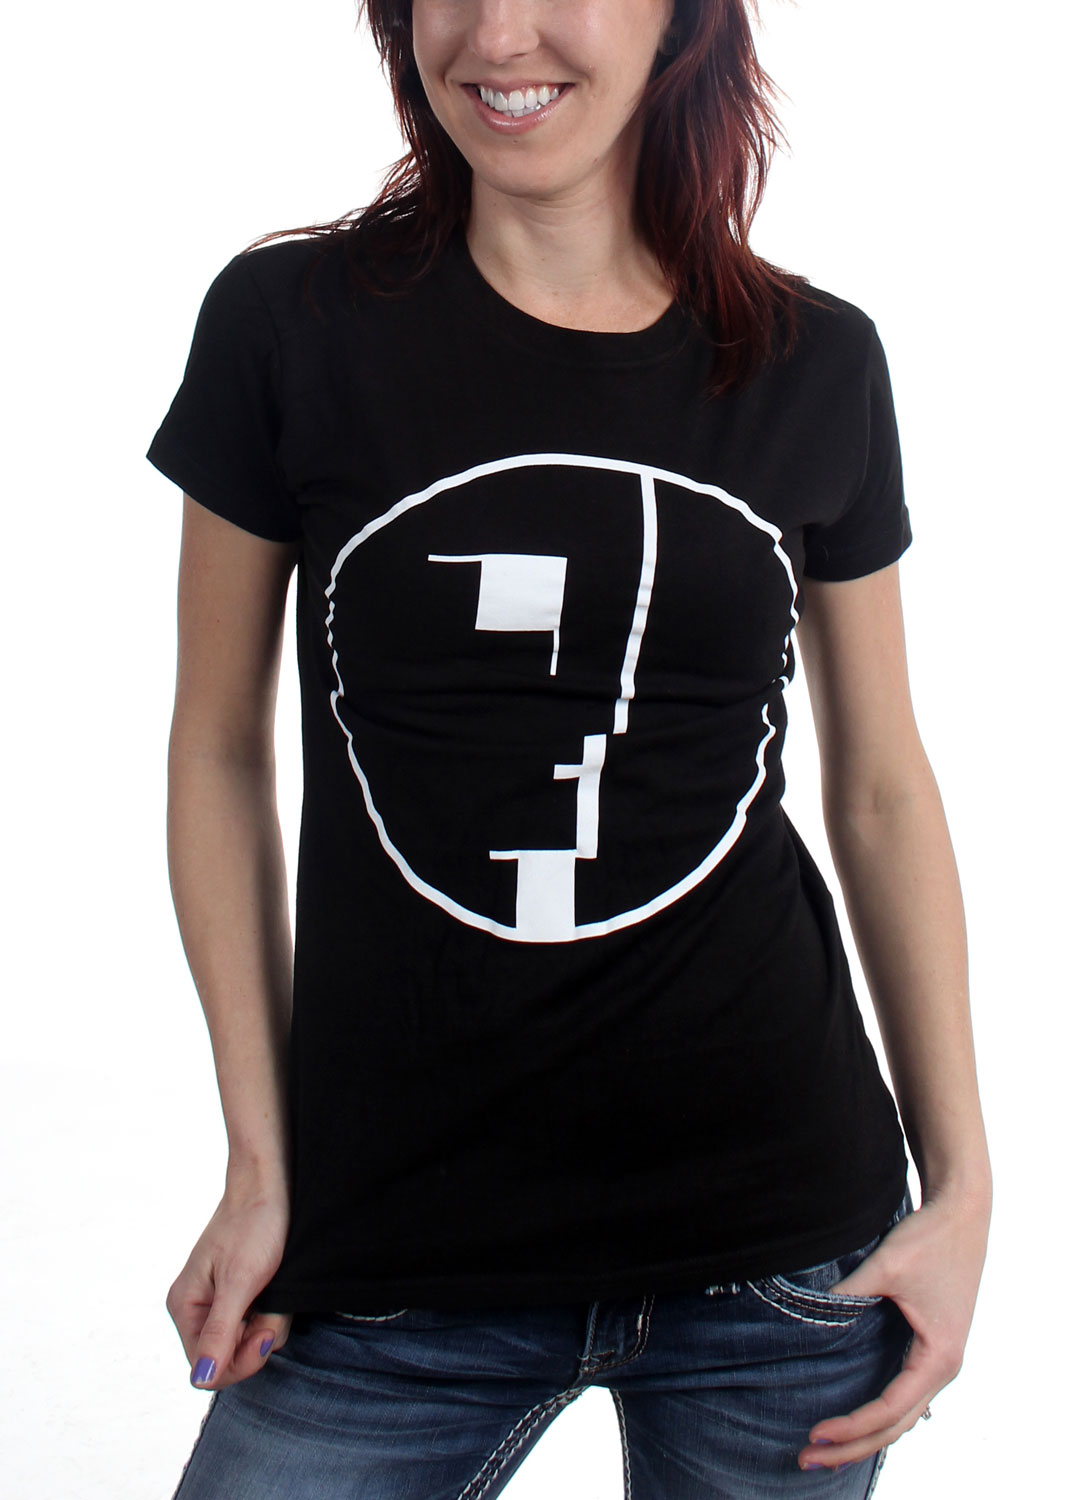 bauhaus spirit logo womens t shirt in black. Black Bedroom Furniture Sets. Home Design Ideas